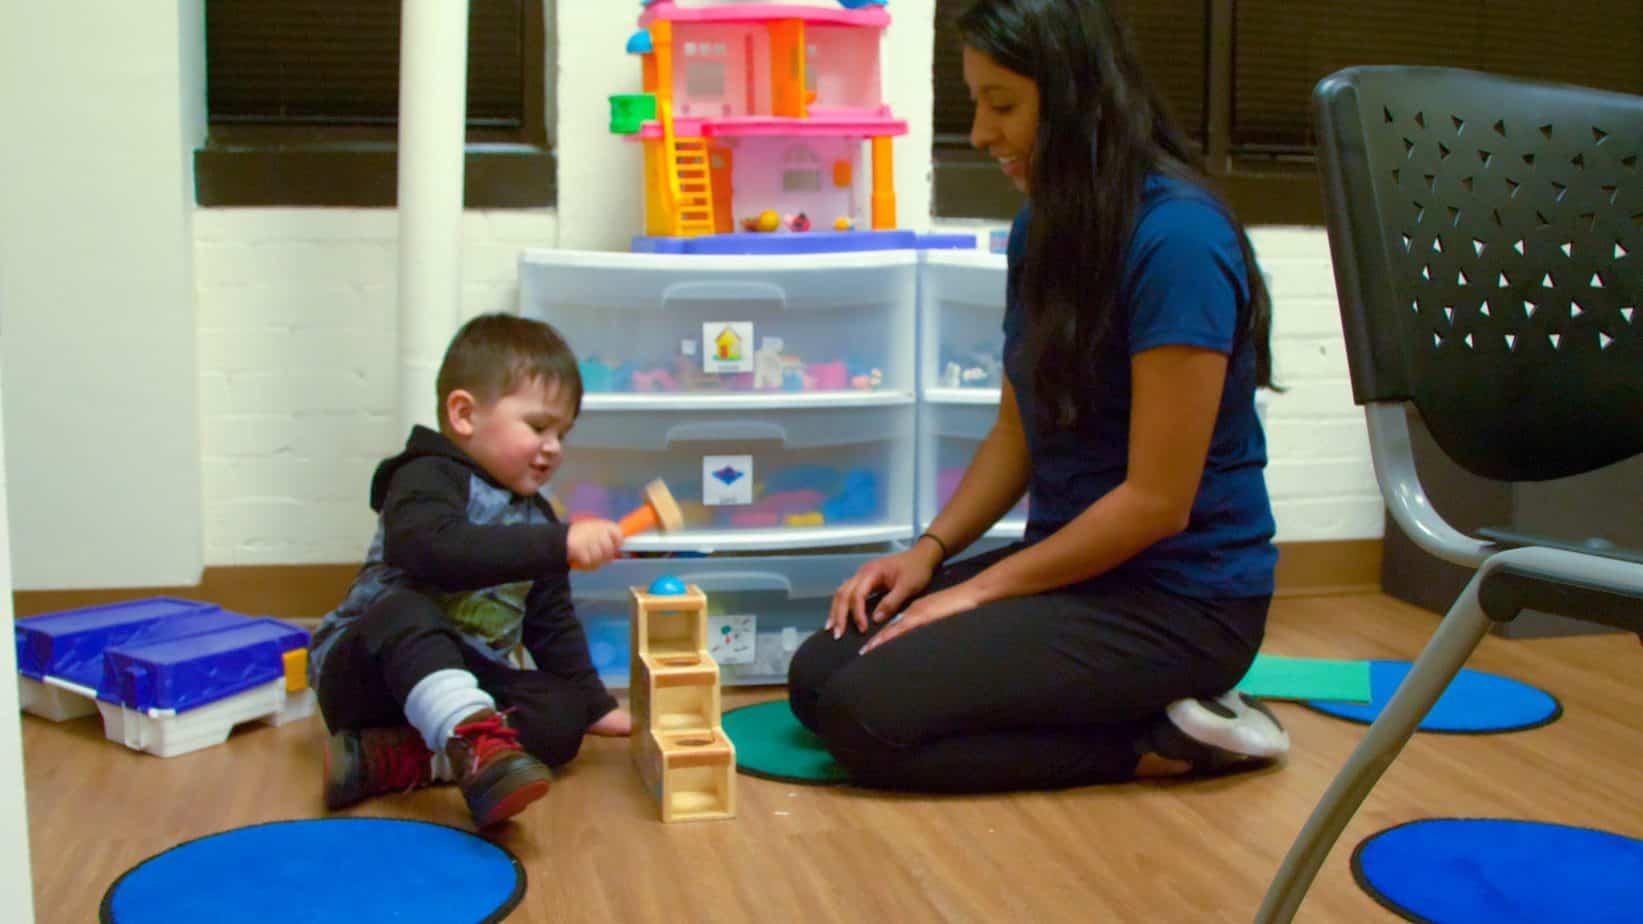 Speech therapy - playing on floor